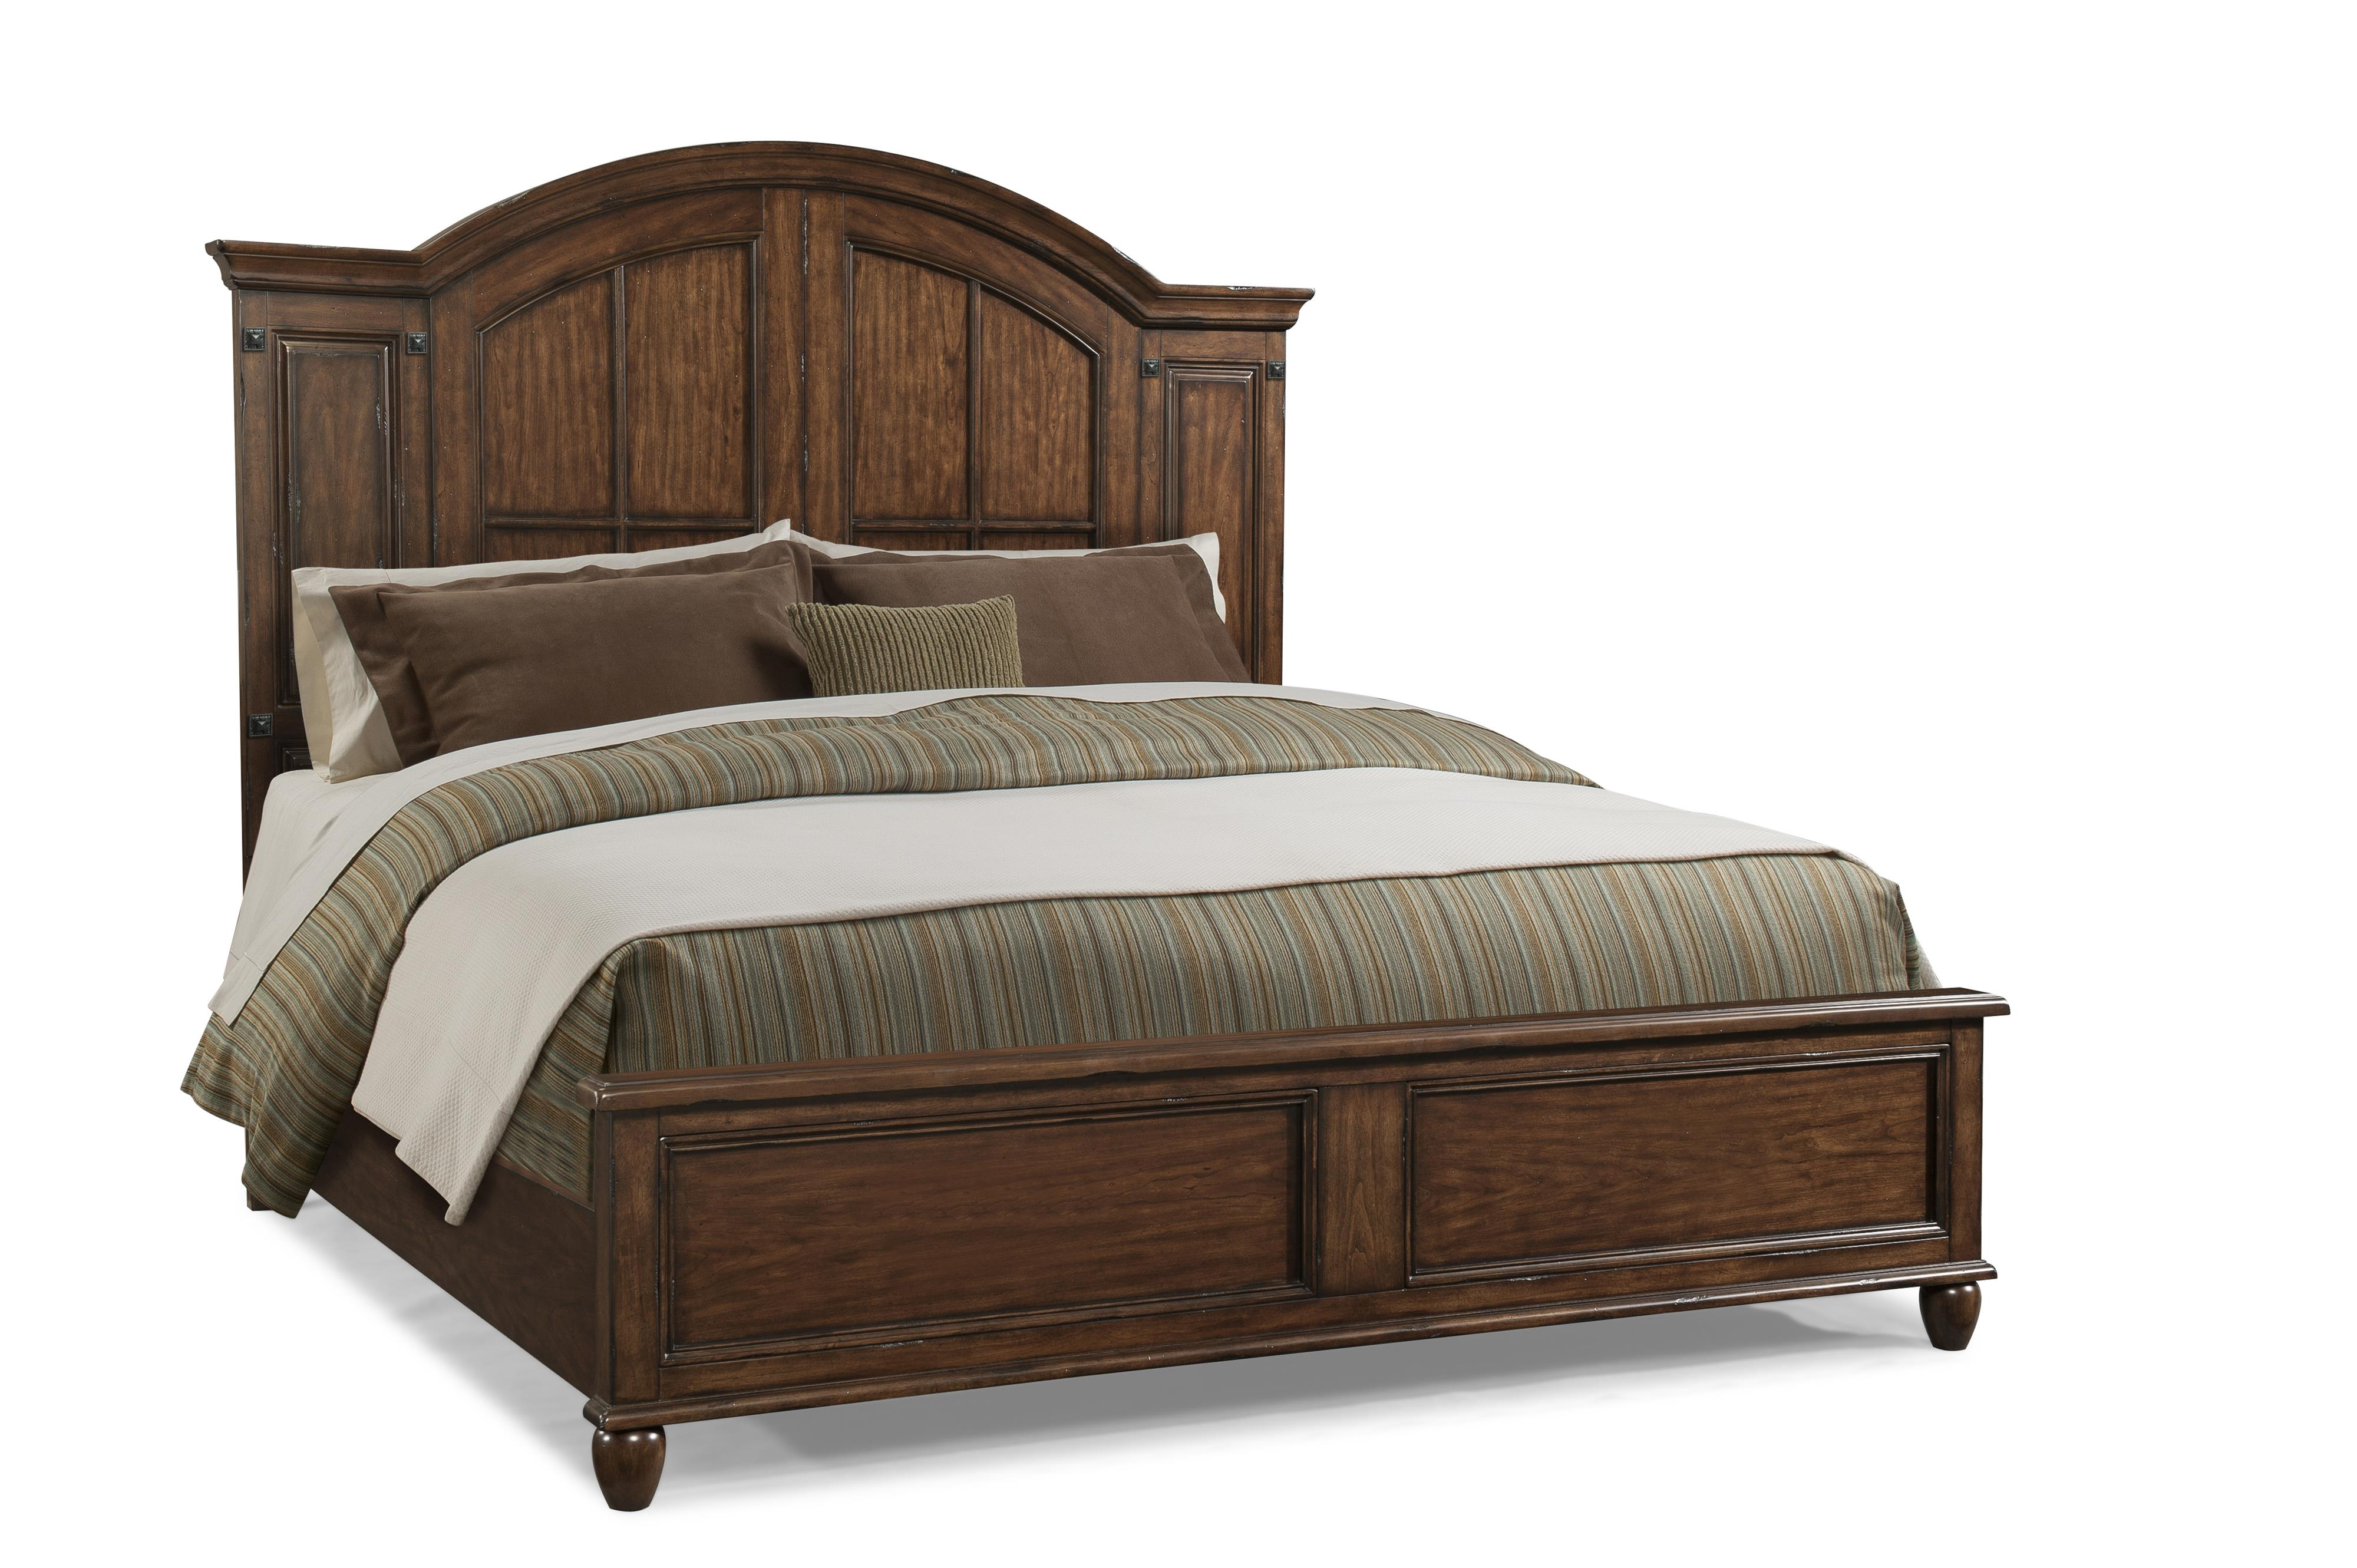 Easton Collection Blue Ridge Homestead California King Panel Bed - Item Number: 427-060 KBED